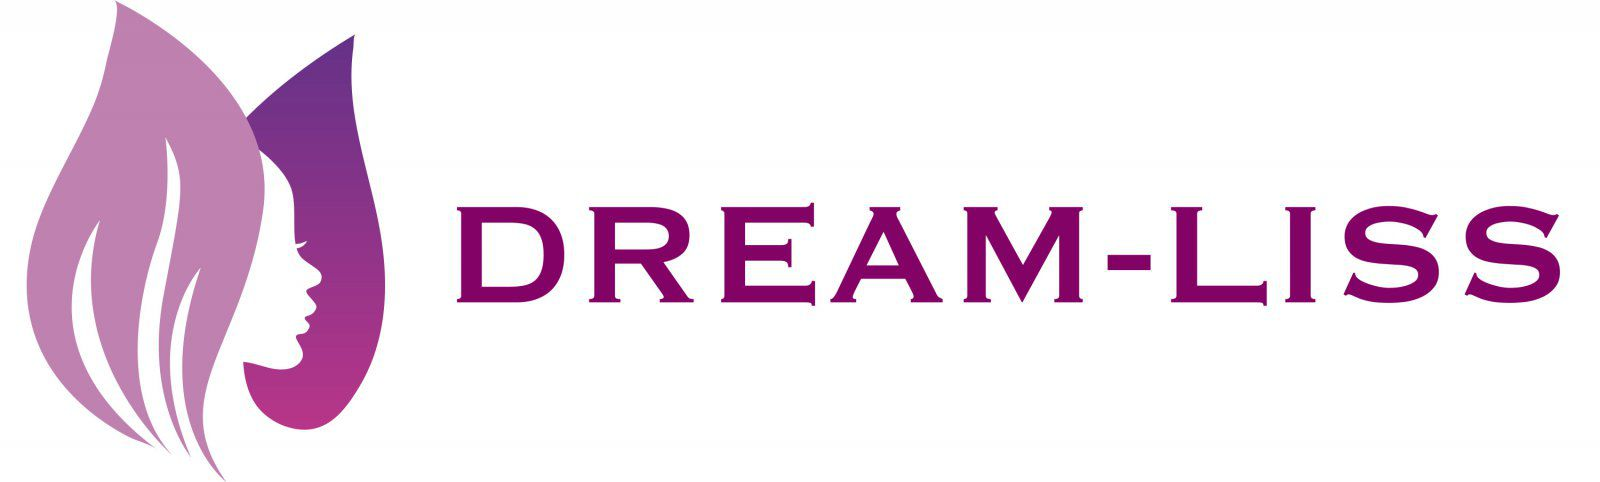 dream-liss.com